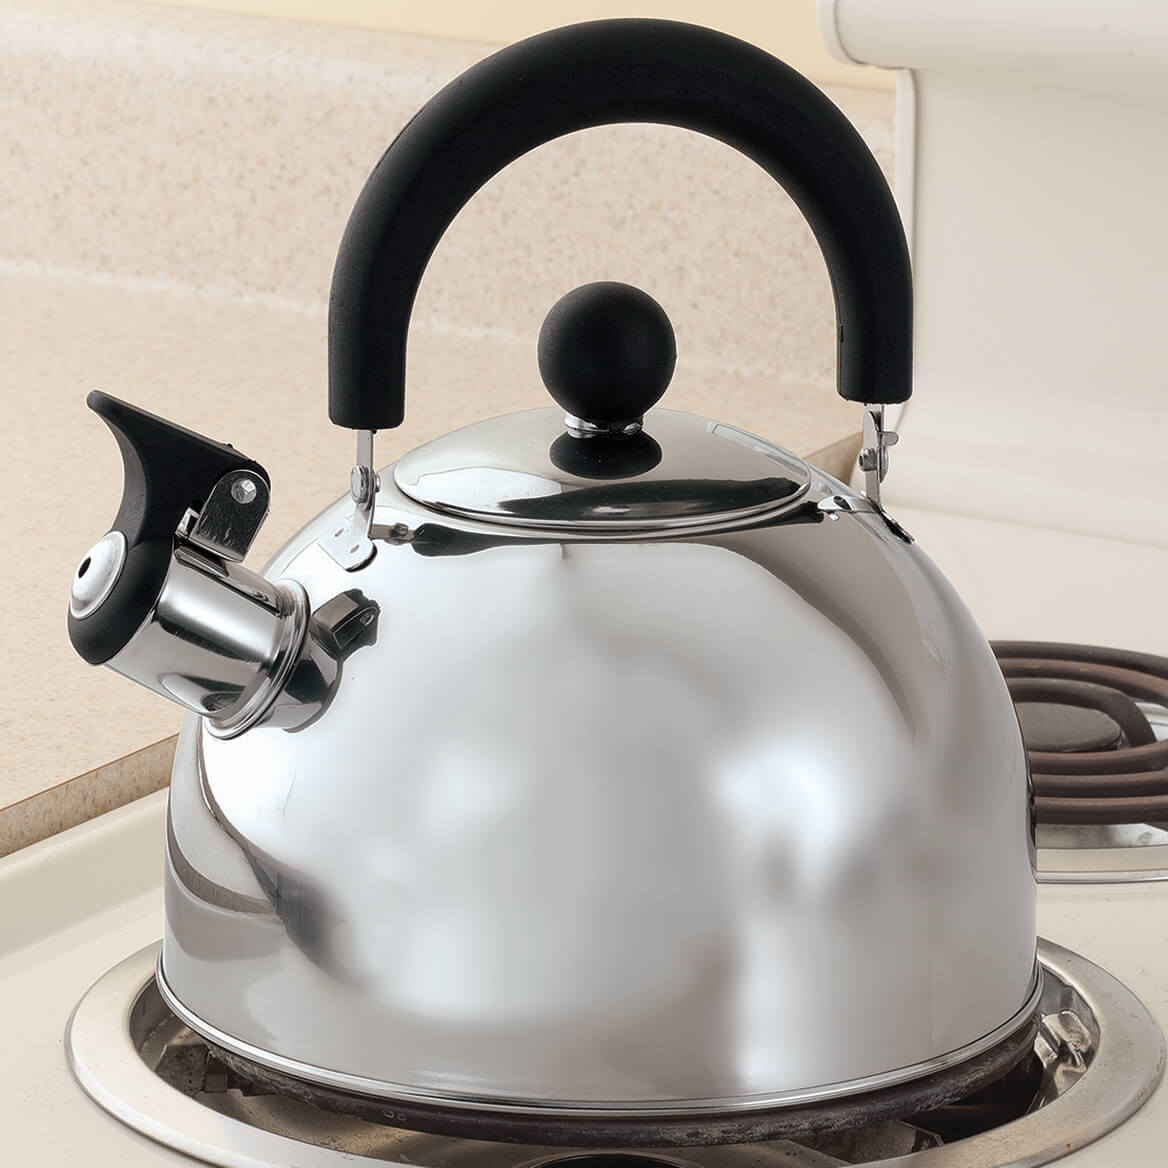 Stainless Steel Whistling Tea Kettle by Home-Style Kitchen-353542